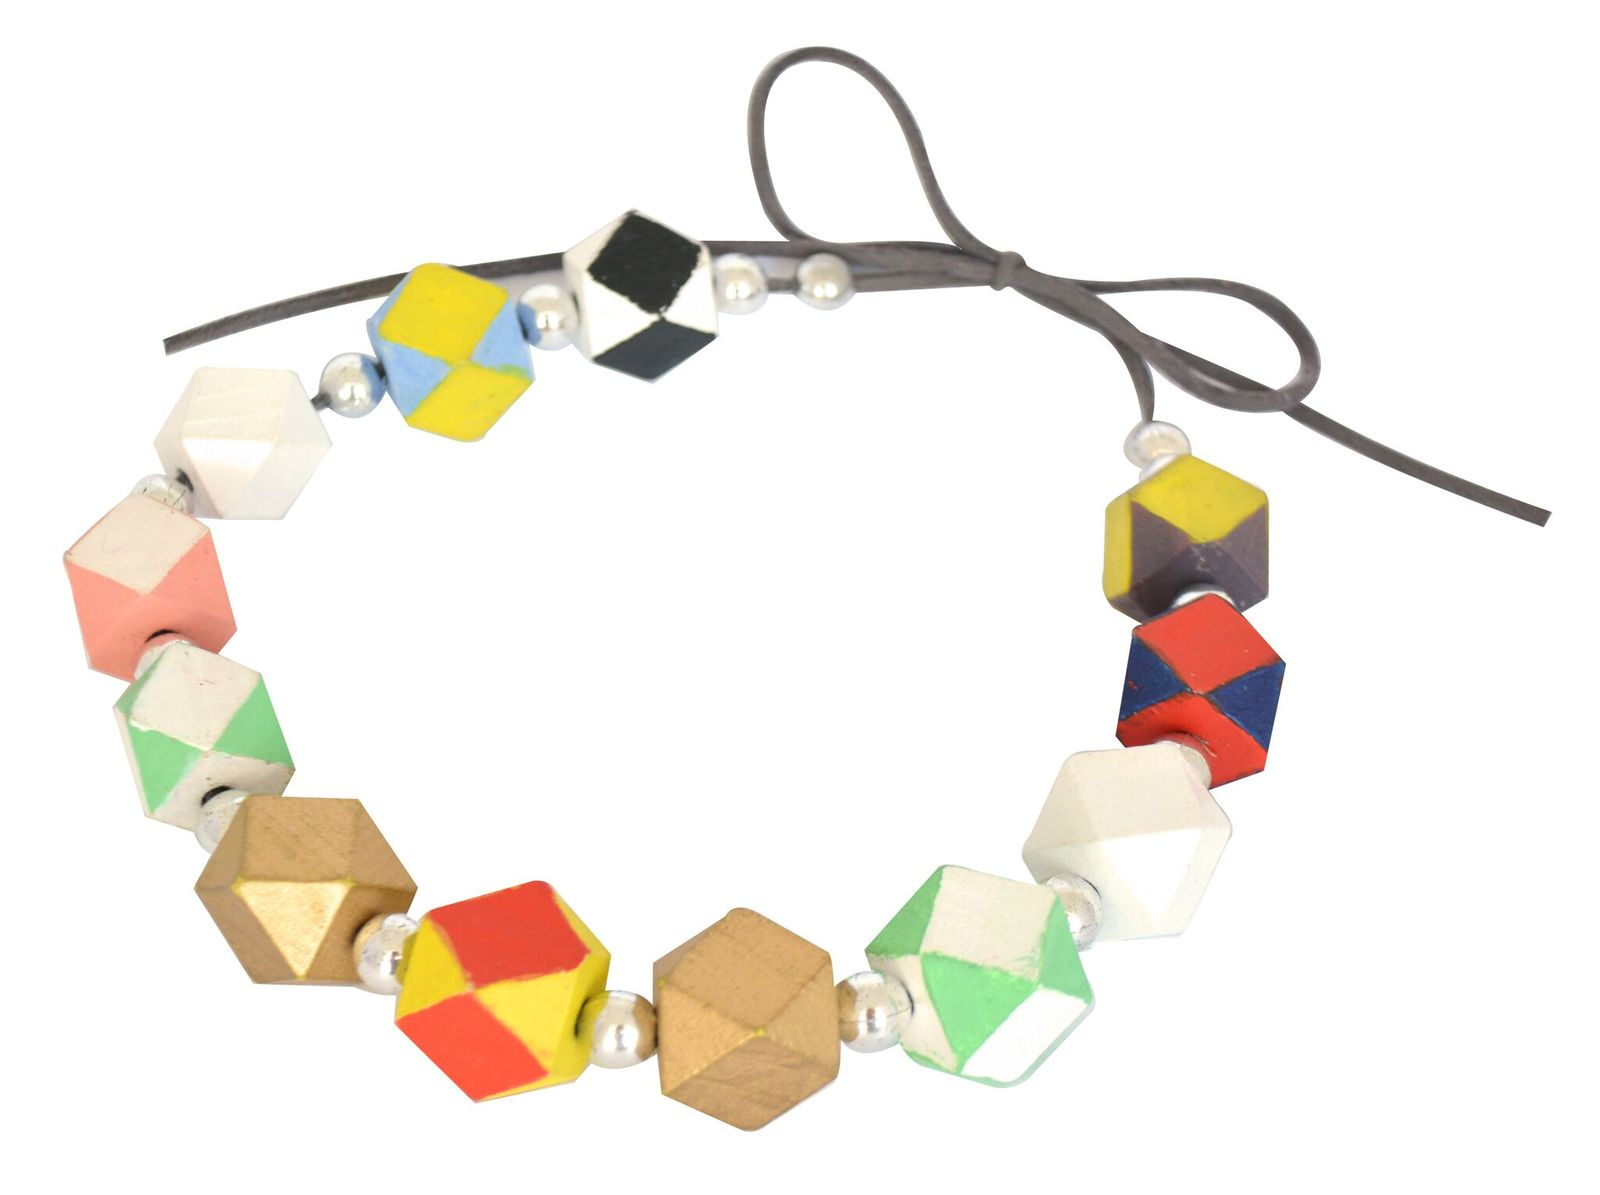 Seedling: Create your own Geometric Jewellery image